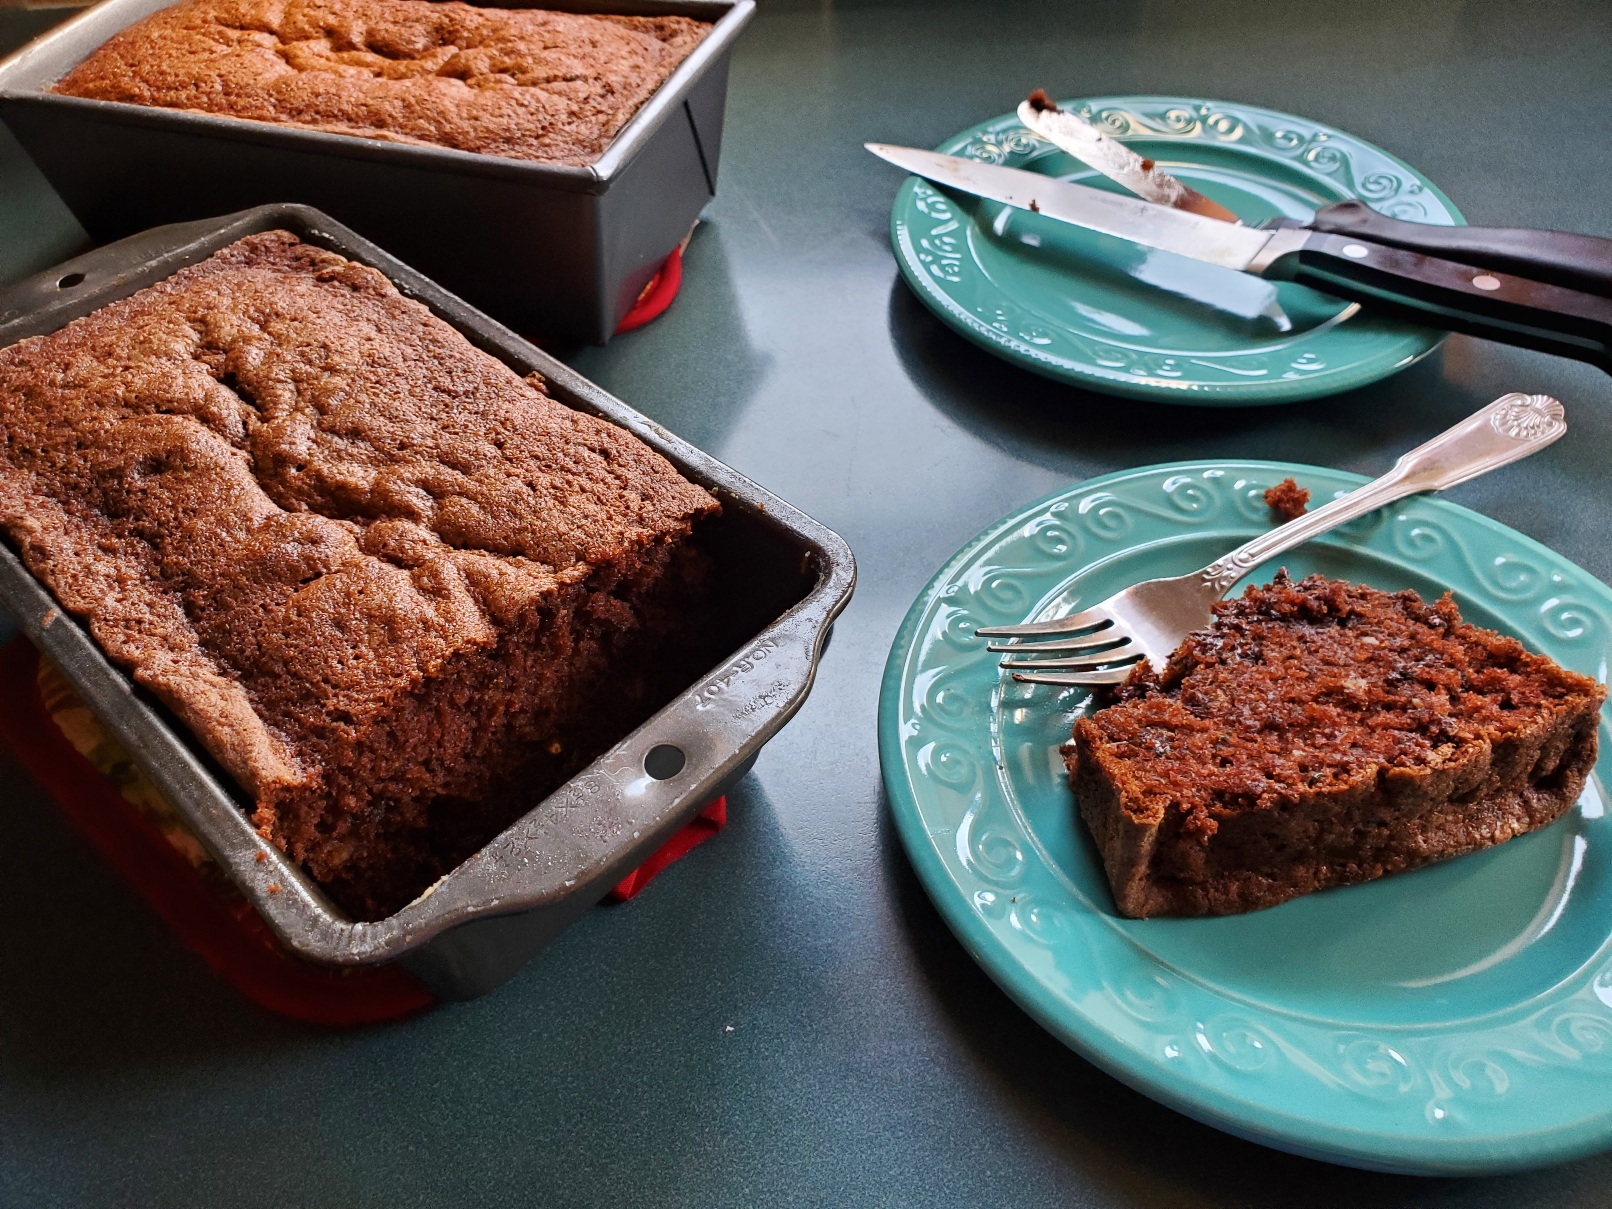 Grandma's Chocolate Zucchini Bread cookingsooz